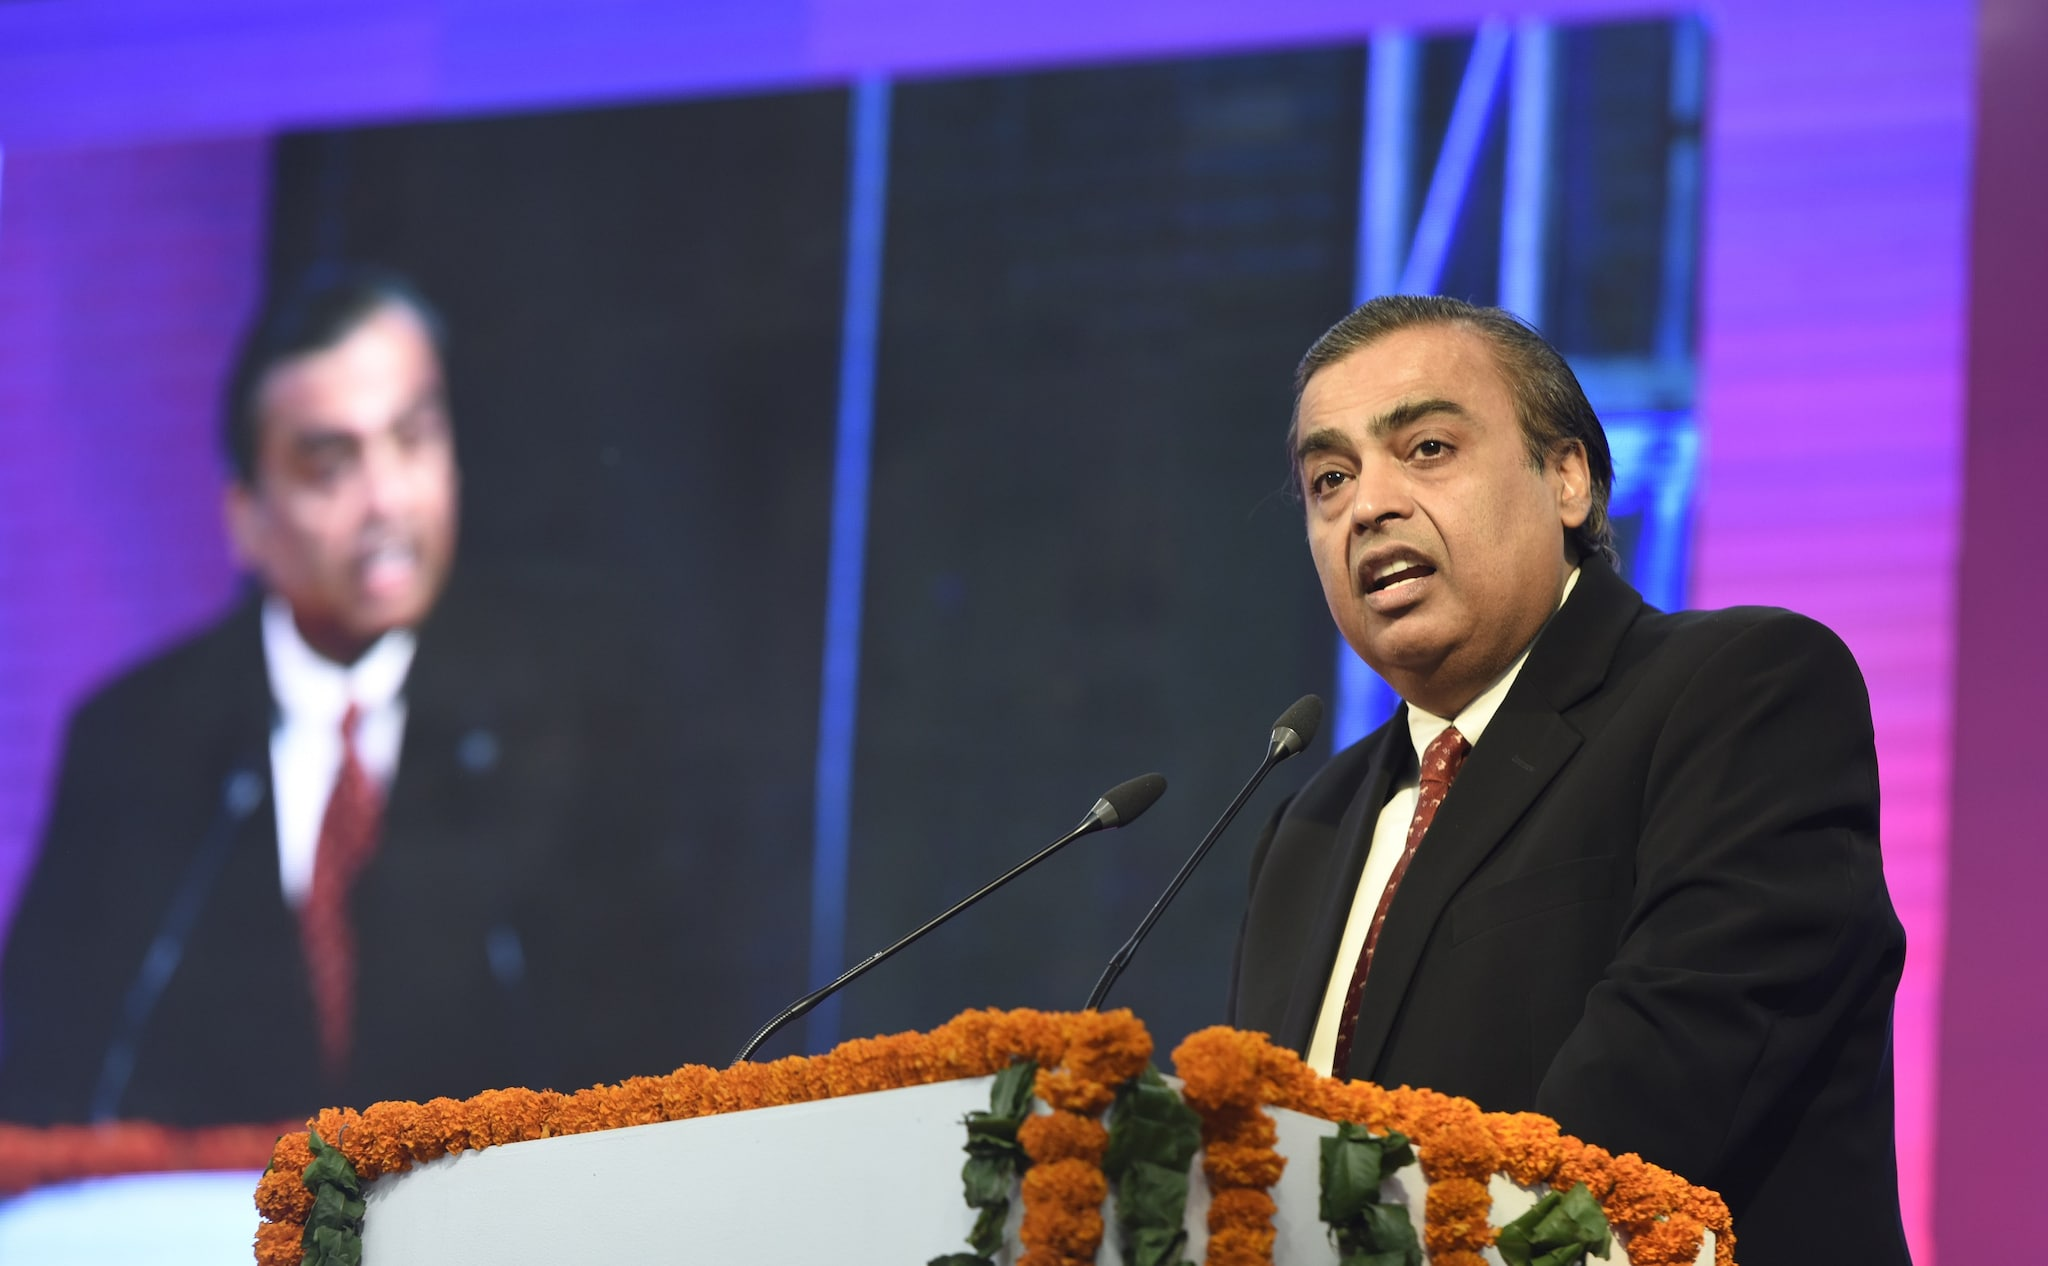 India's richest man and the chairman of Reliance Industries, Mukesh Ambani. (Image: Getty Images)